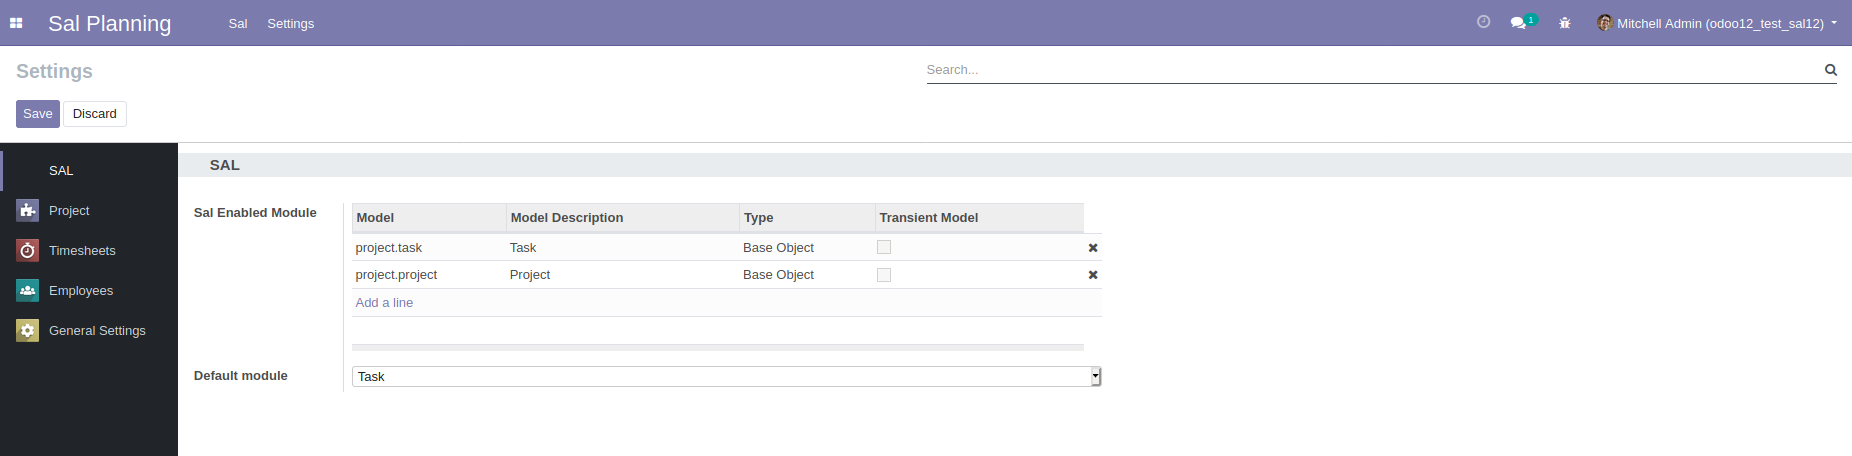 Setting SAL in Odoo - Netfarm Sal Planning